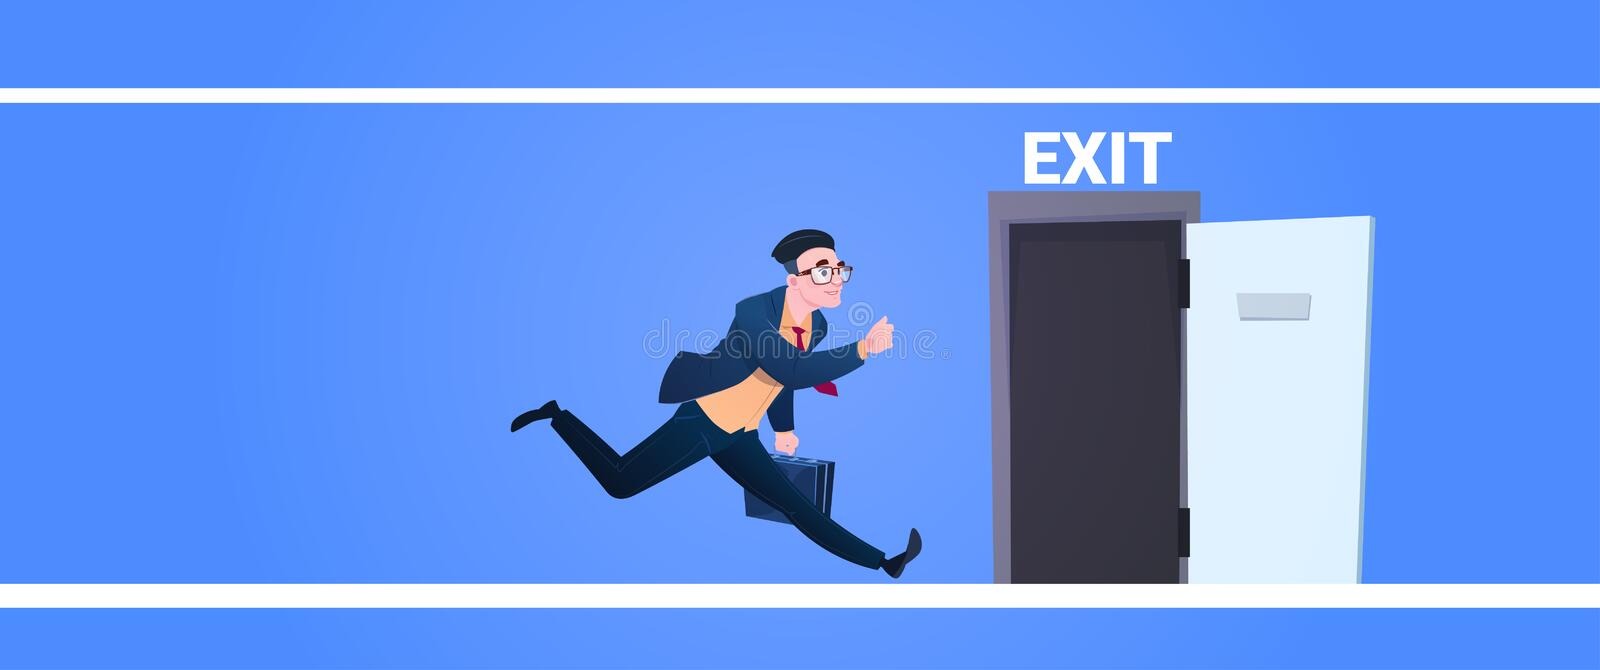 Businessman run to open exit door man running from work evacuation sing emergency on blue background flat banner stock illustration